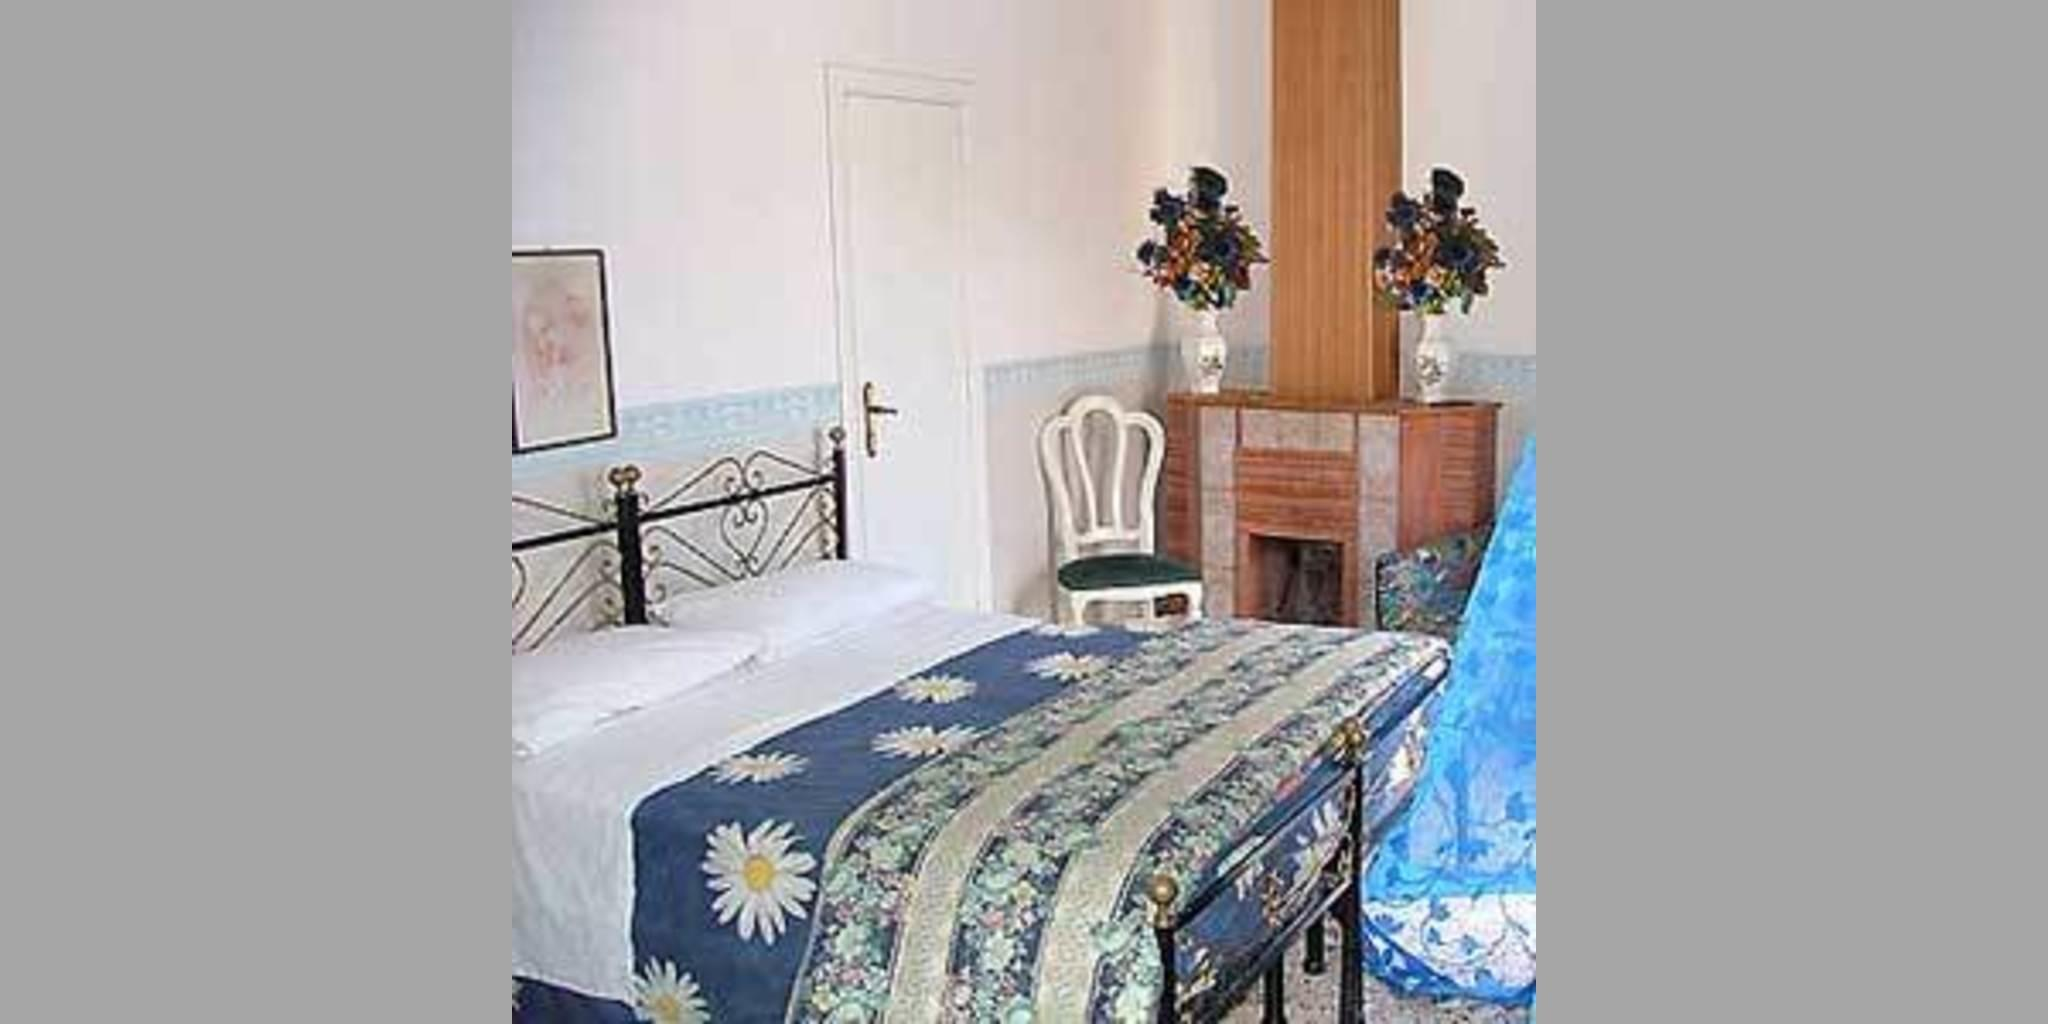 Bed & Breakfast Teggiano - Teggiano  Castello